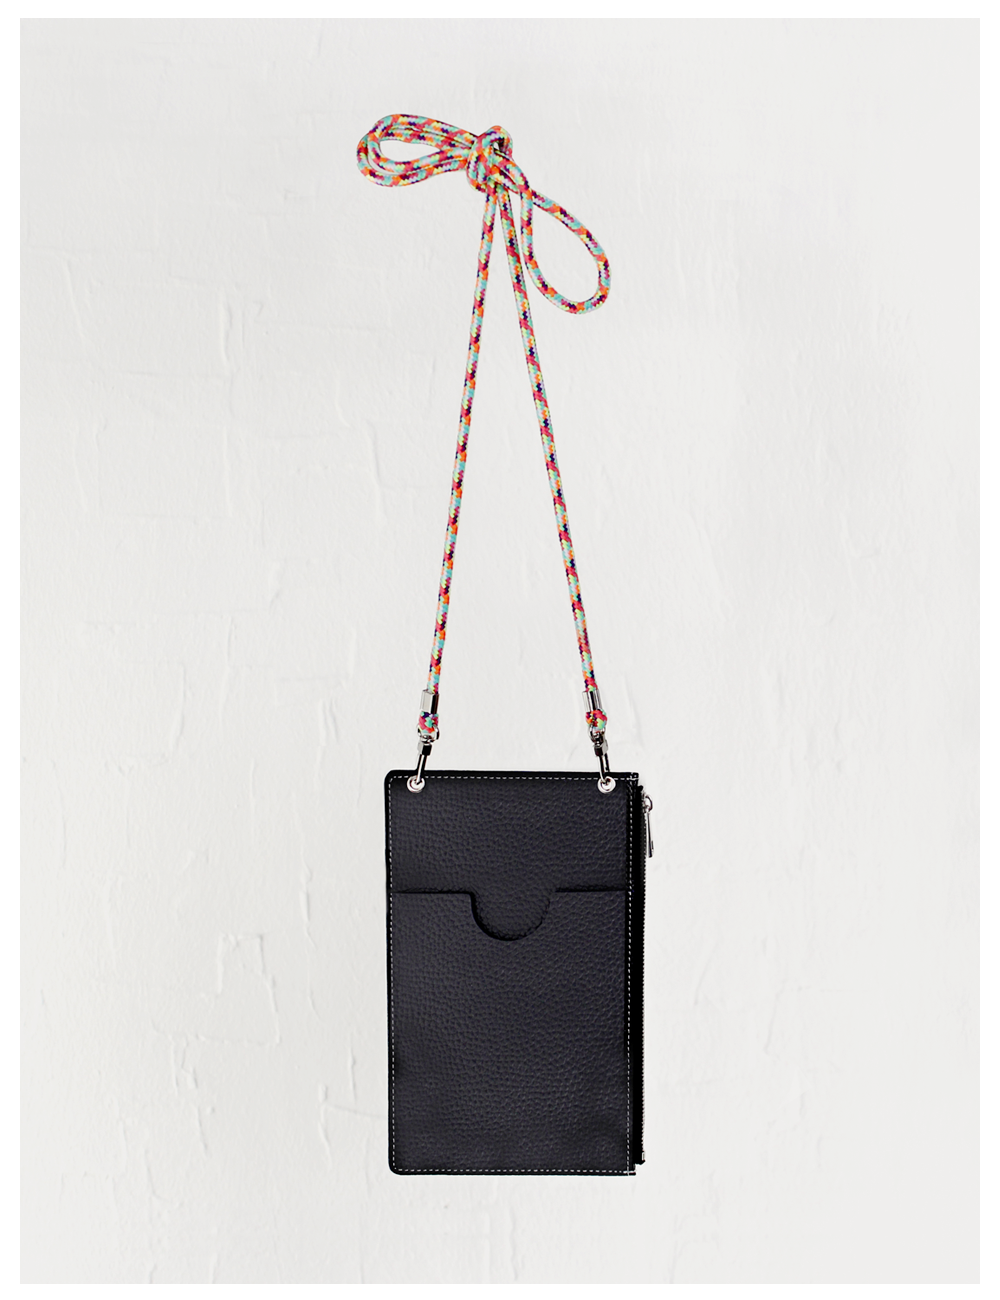 Classy chain leather phone mini bag_Black